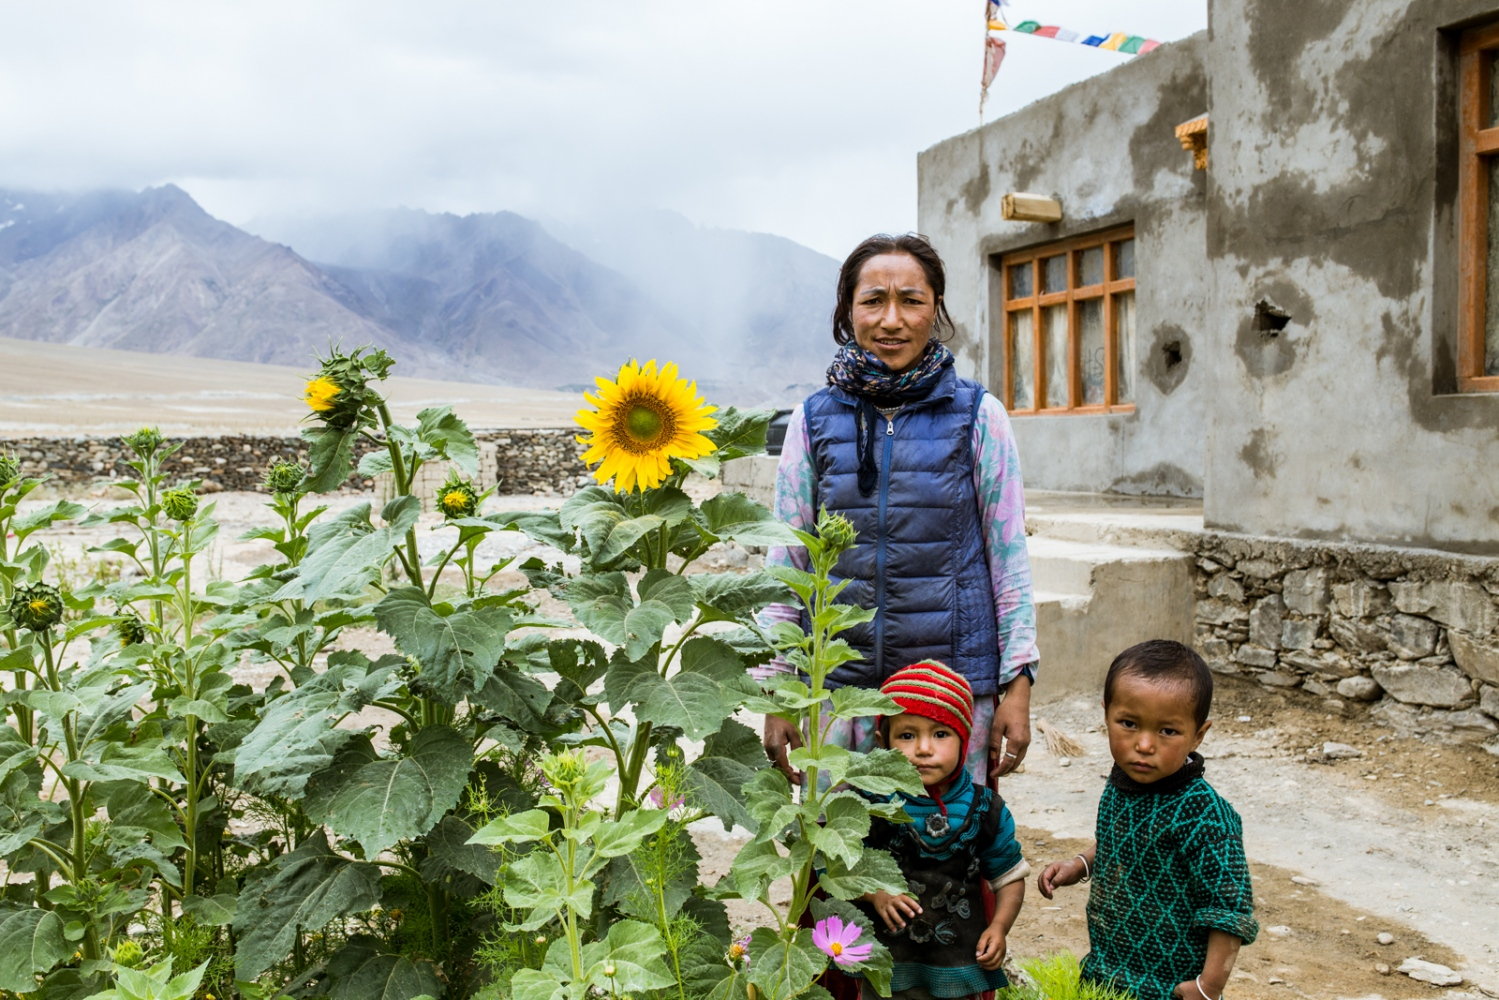 Tenzen Chezen and her children outside their newly built home in the Zanskar Himalaya. Tenzen and her family recently relocated from their old village because of constant drought conditions. The village of Kumik, where she is from, has watched their glacier, which provided the community water, disappear due to warming temperatures. Her and her family moved to a location closer to a permanent river.